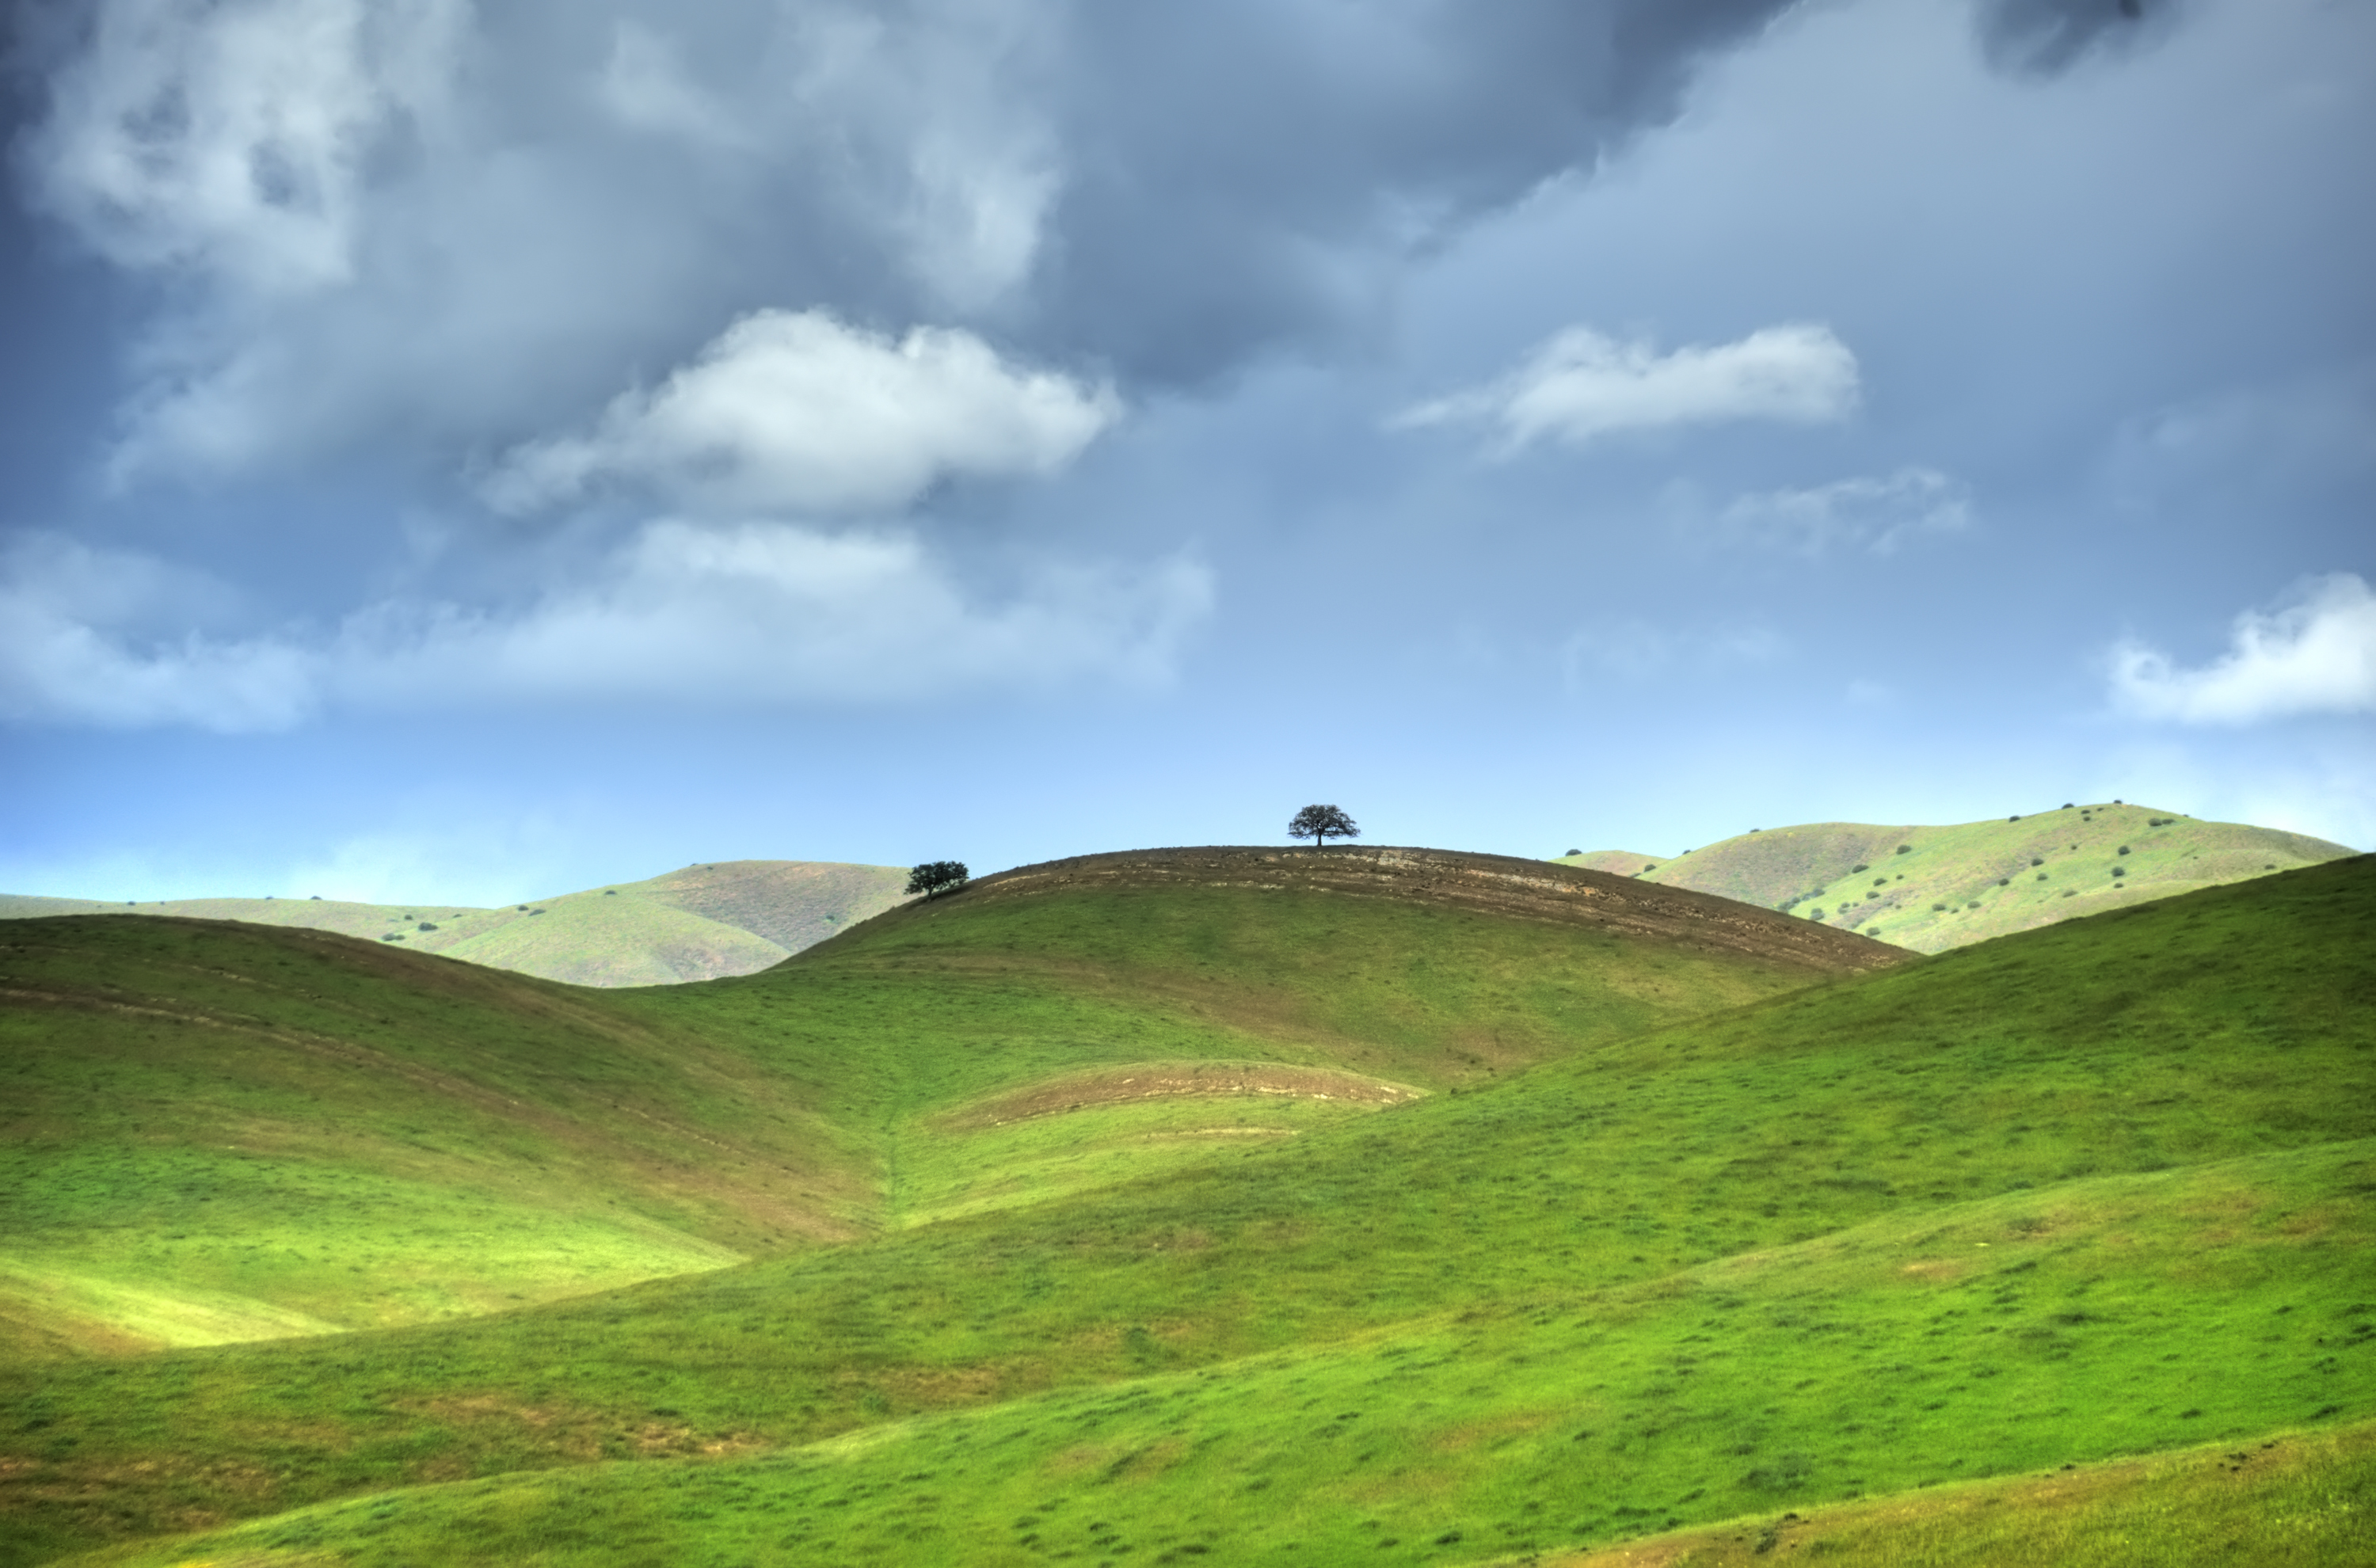 Free Photo] Nature/Landscape, Hill, United States of America, HDR